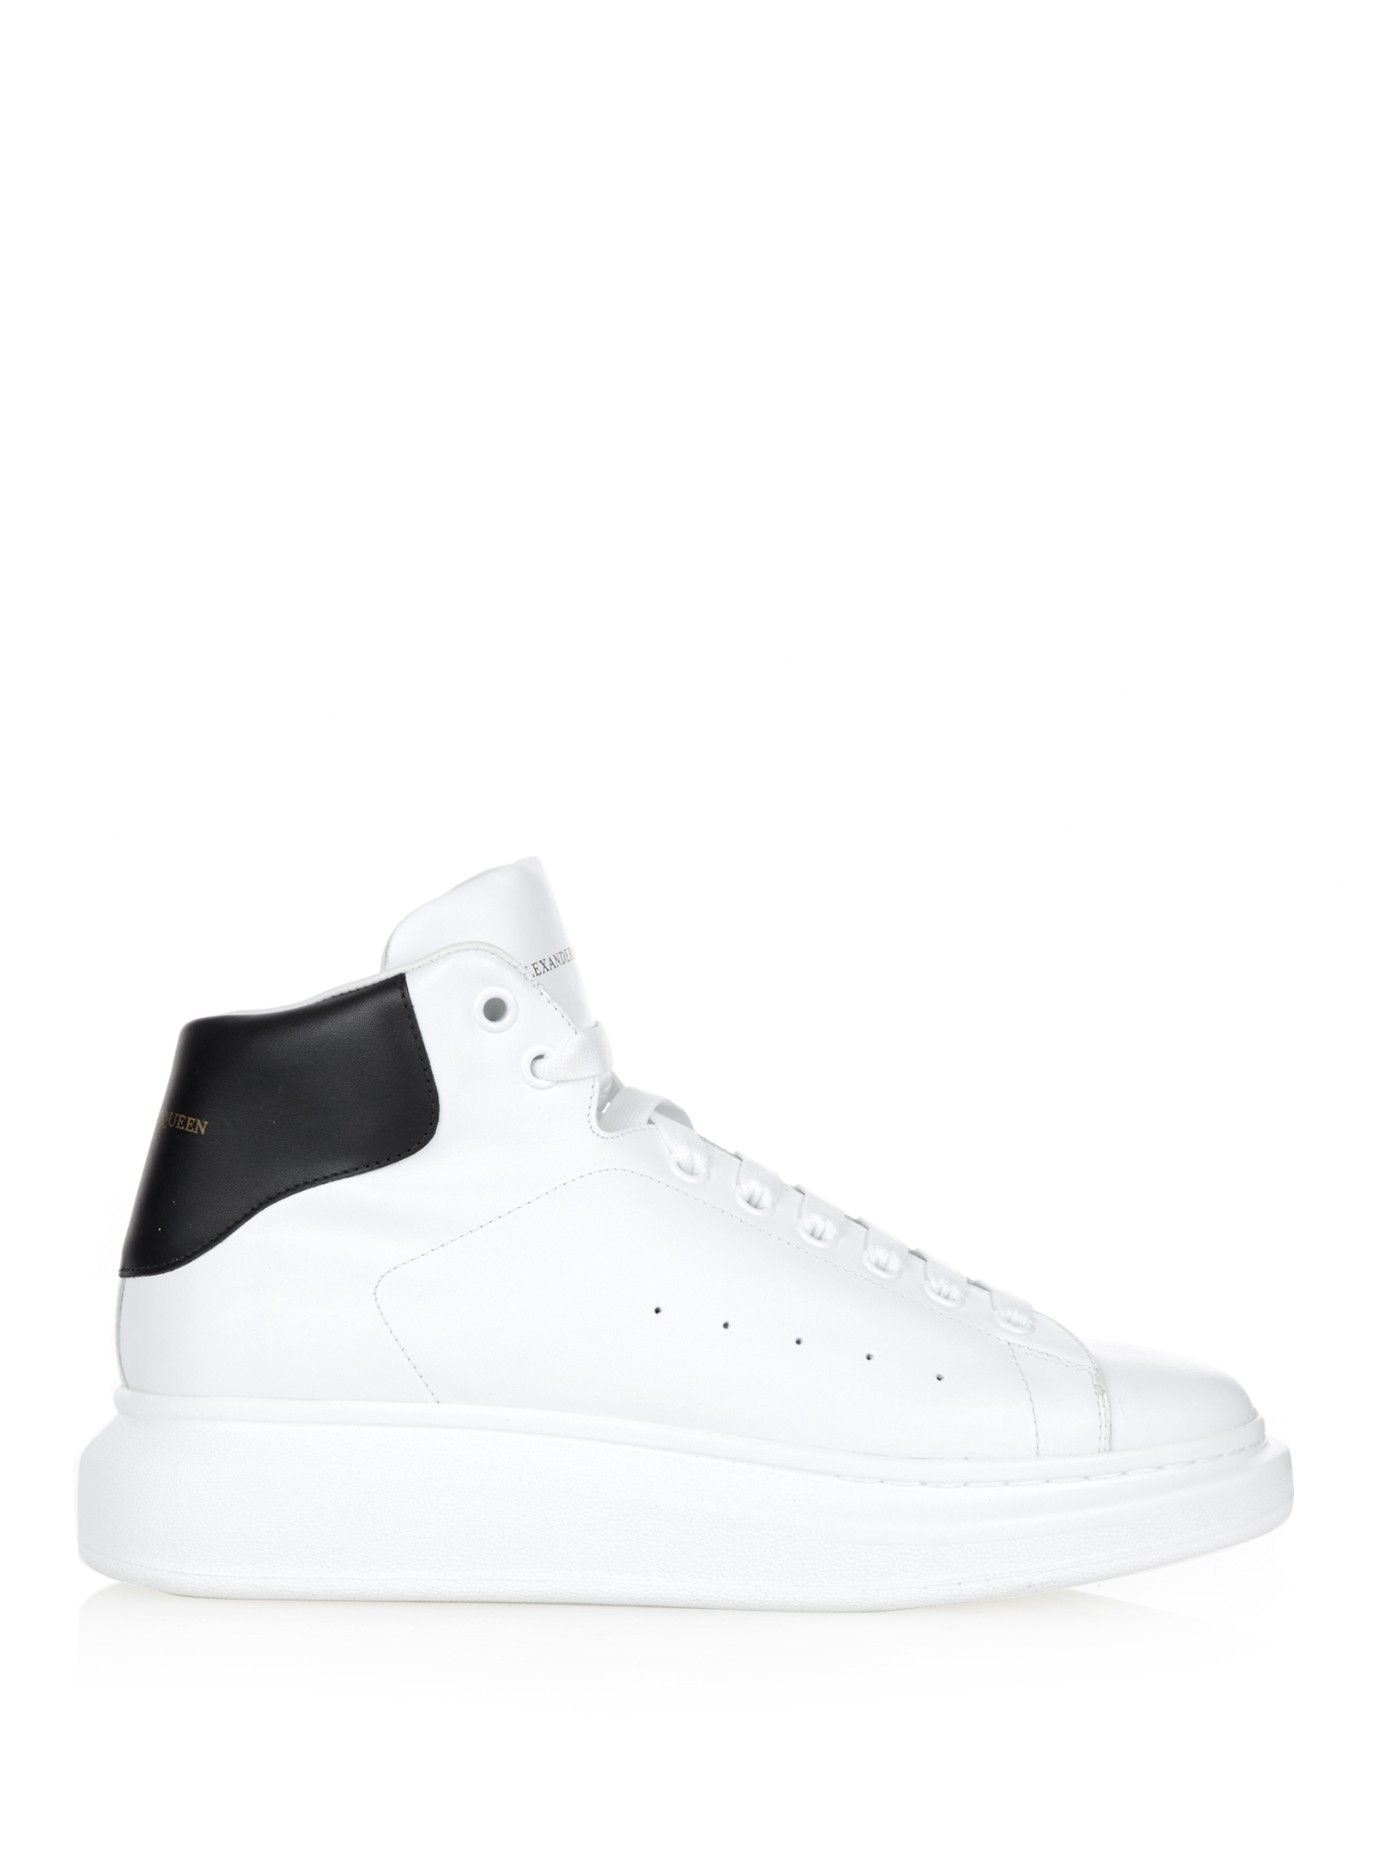 Raised-sole high-top leather trainers